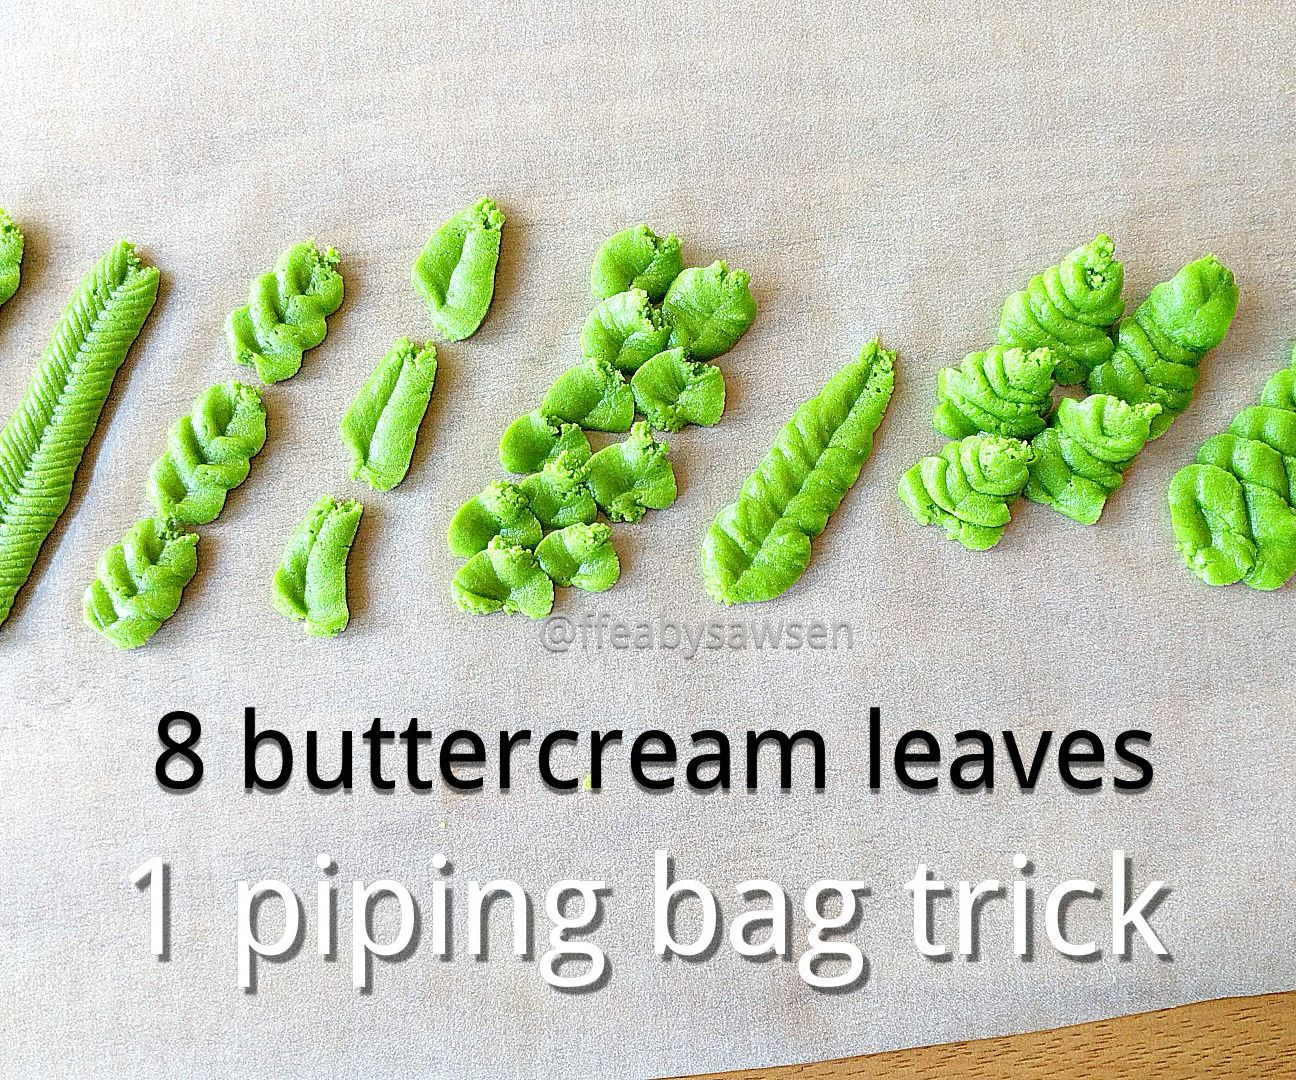 DIY leaf piping tip & 8 buttercream leaves